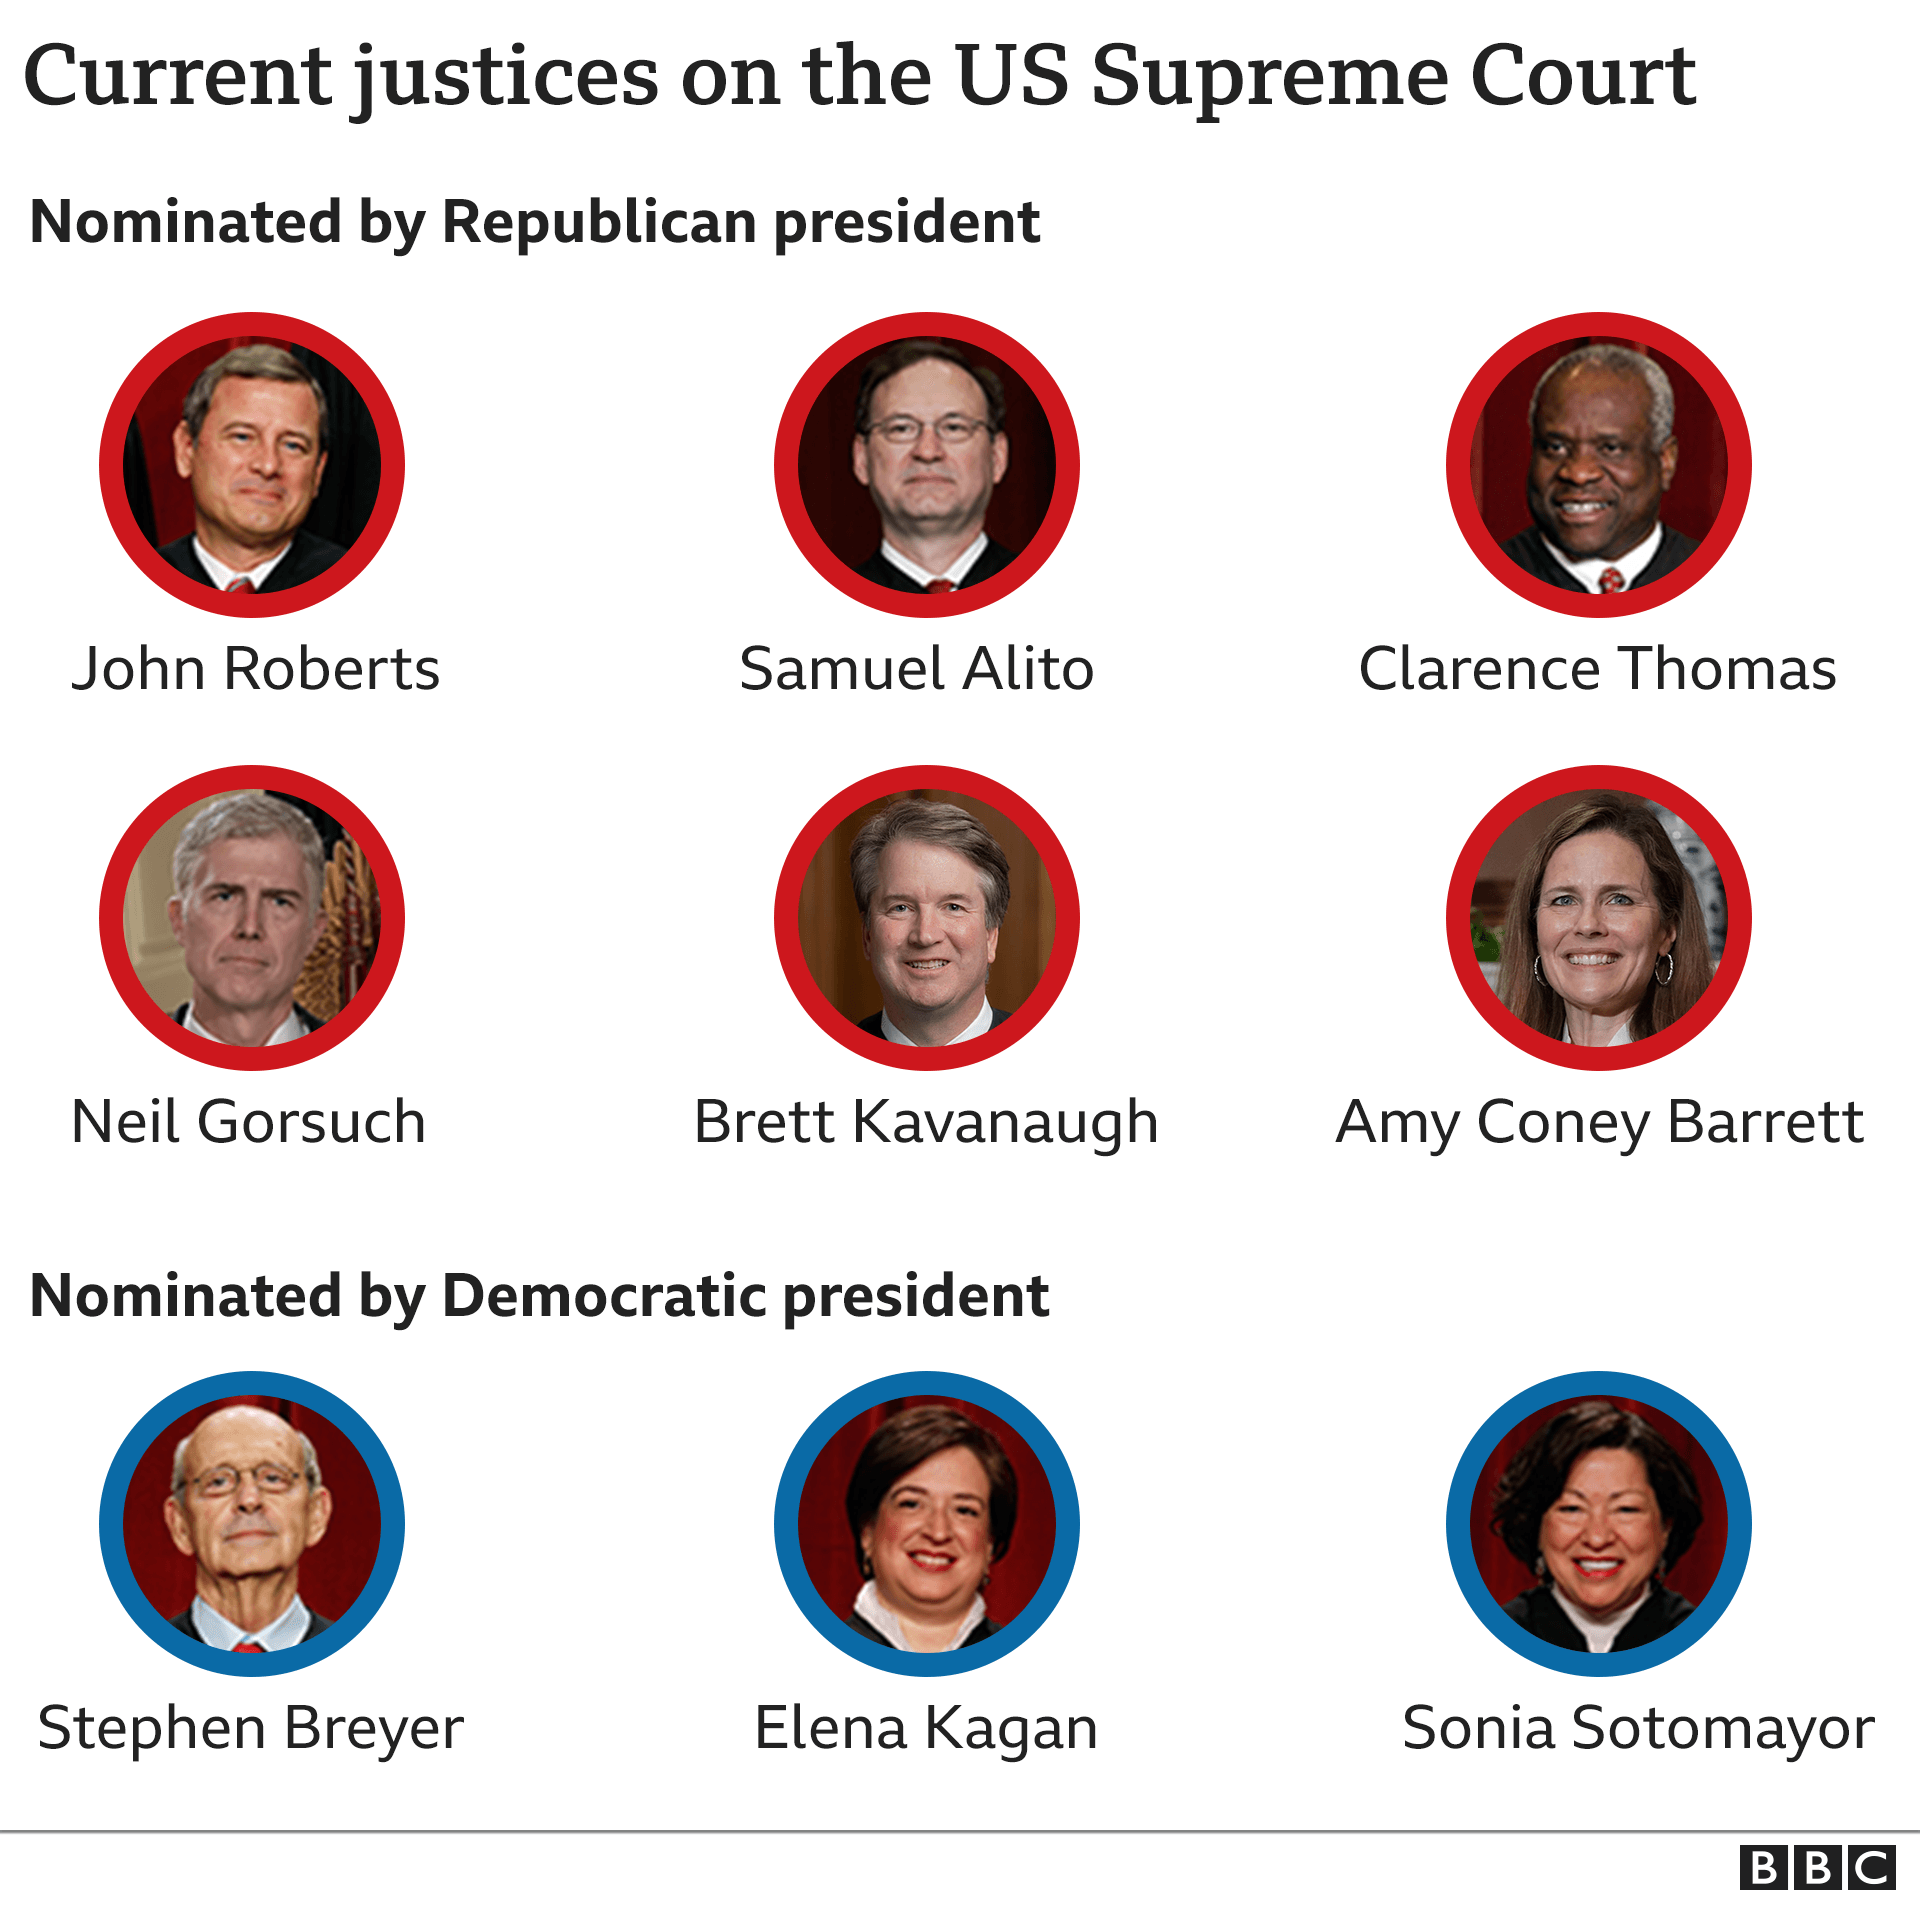 Graphic shows current justices on US Supreme Court